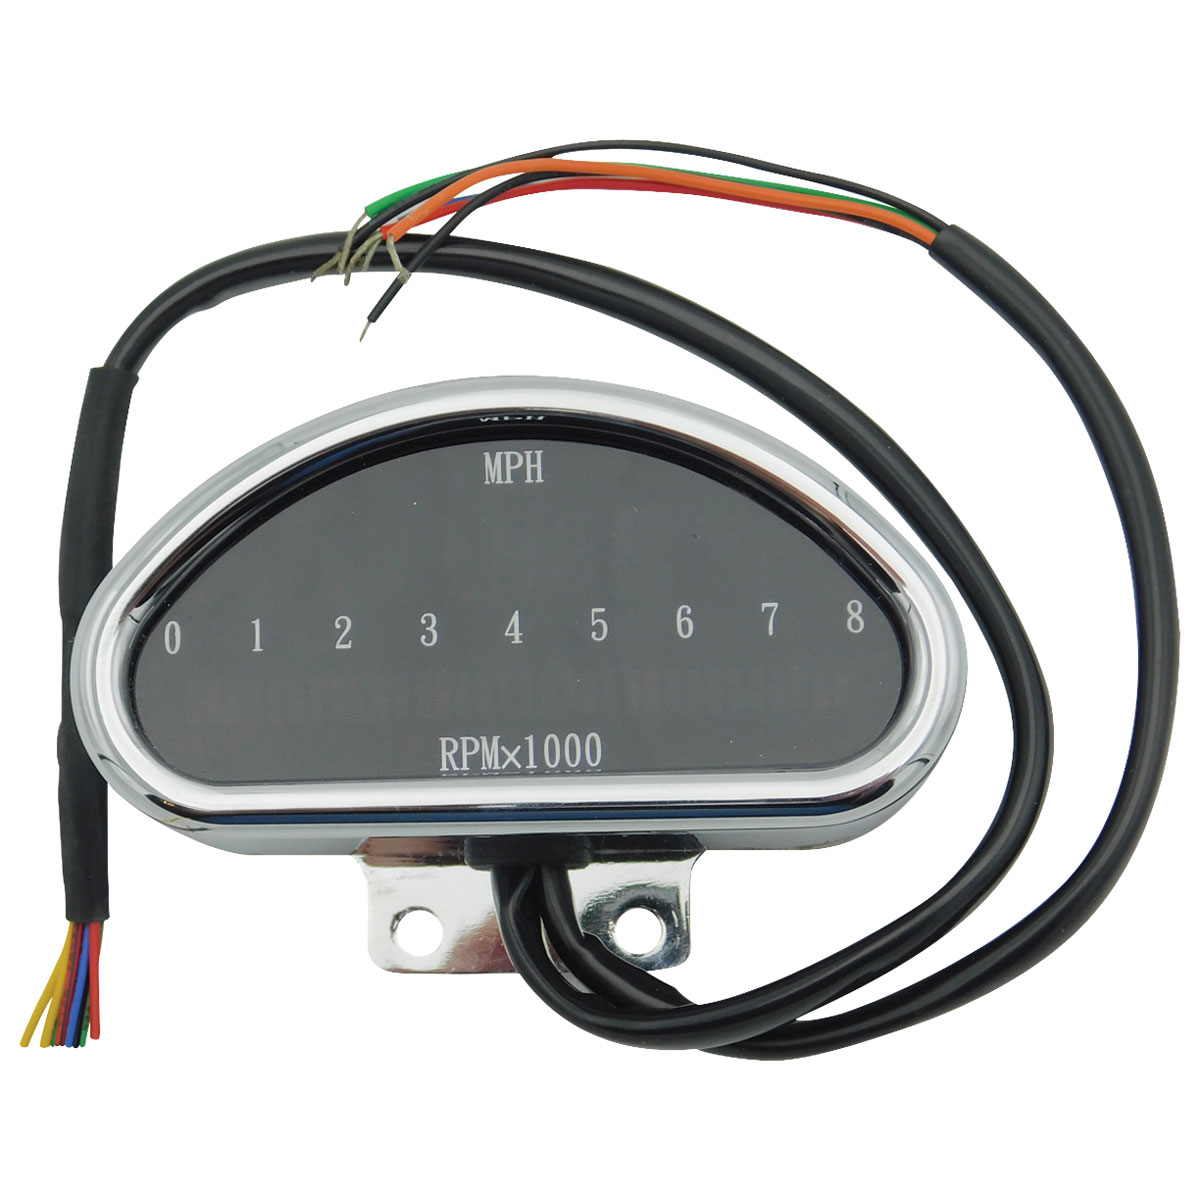 J&P Cycles Digital Sdometer and Tach - 5700063 on